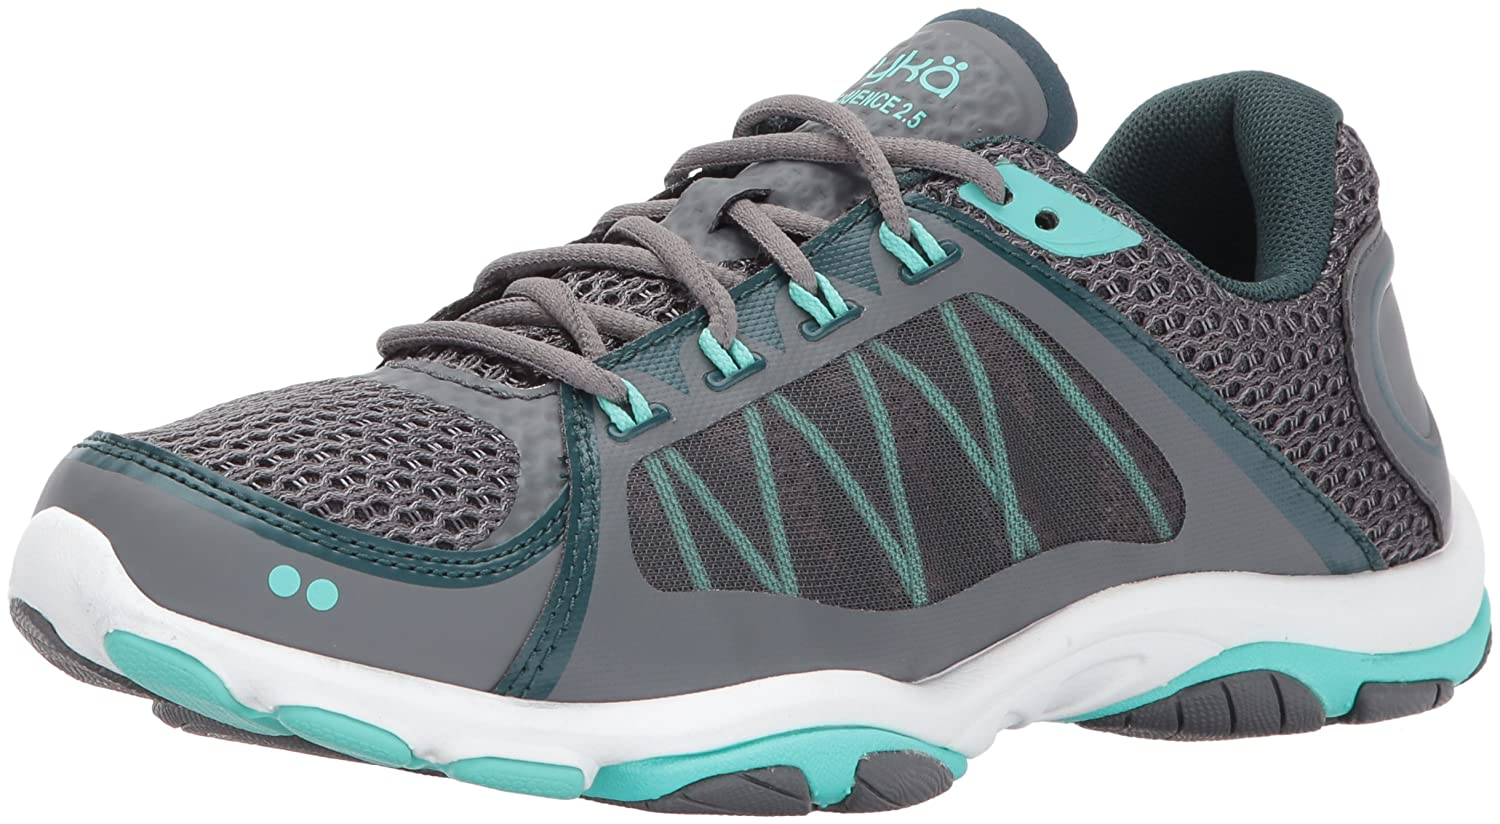 Ryka Women's Influence 2.5 Cross Trainer E5060M1